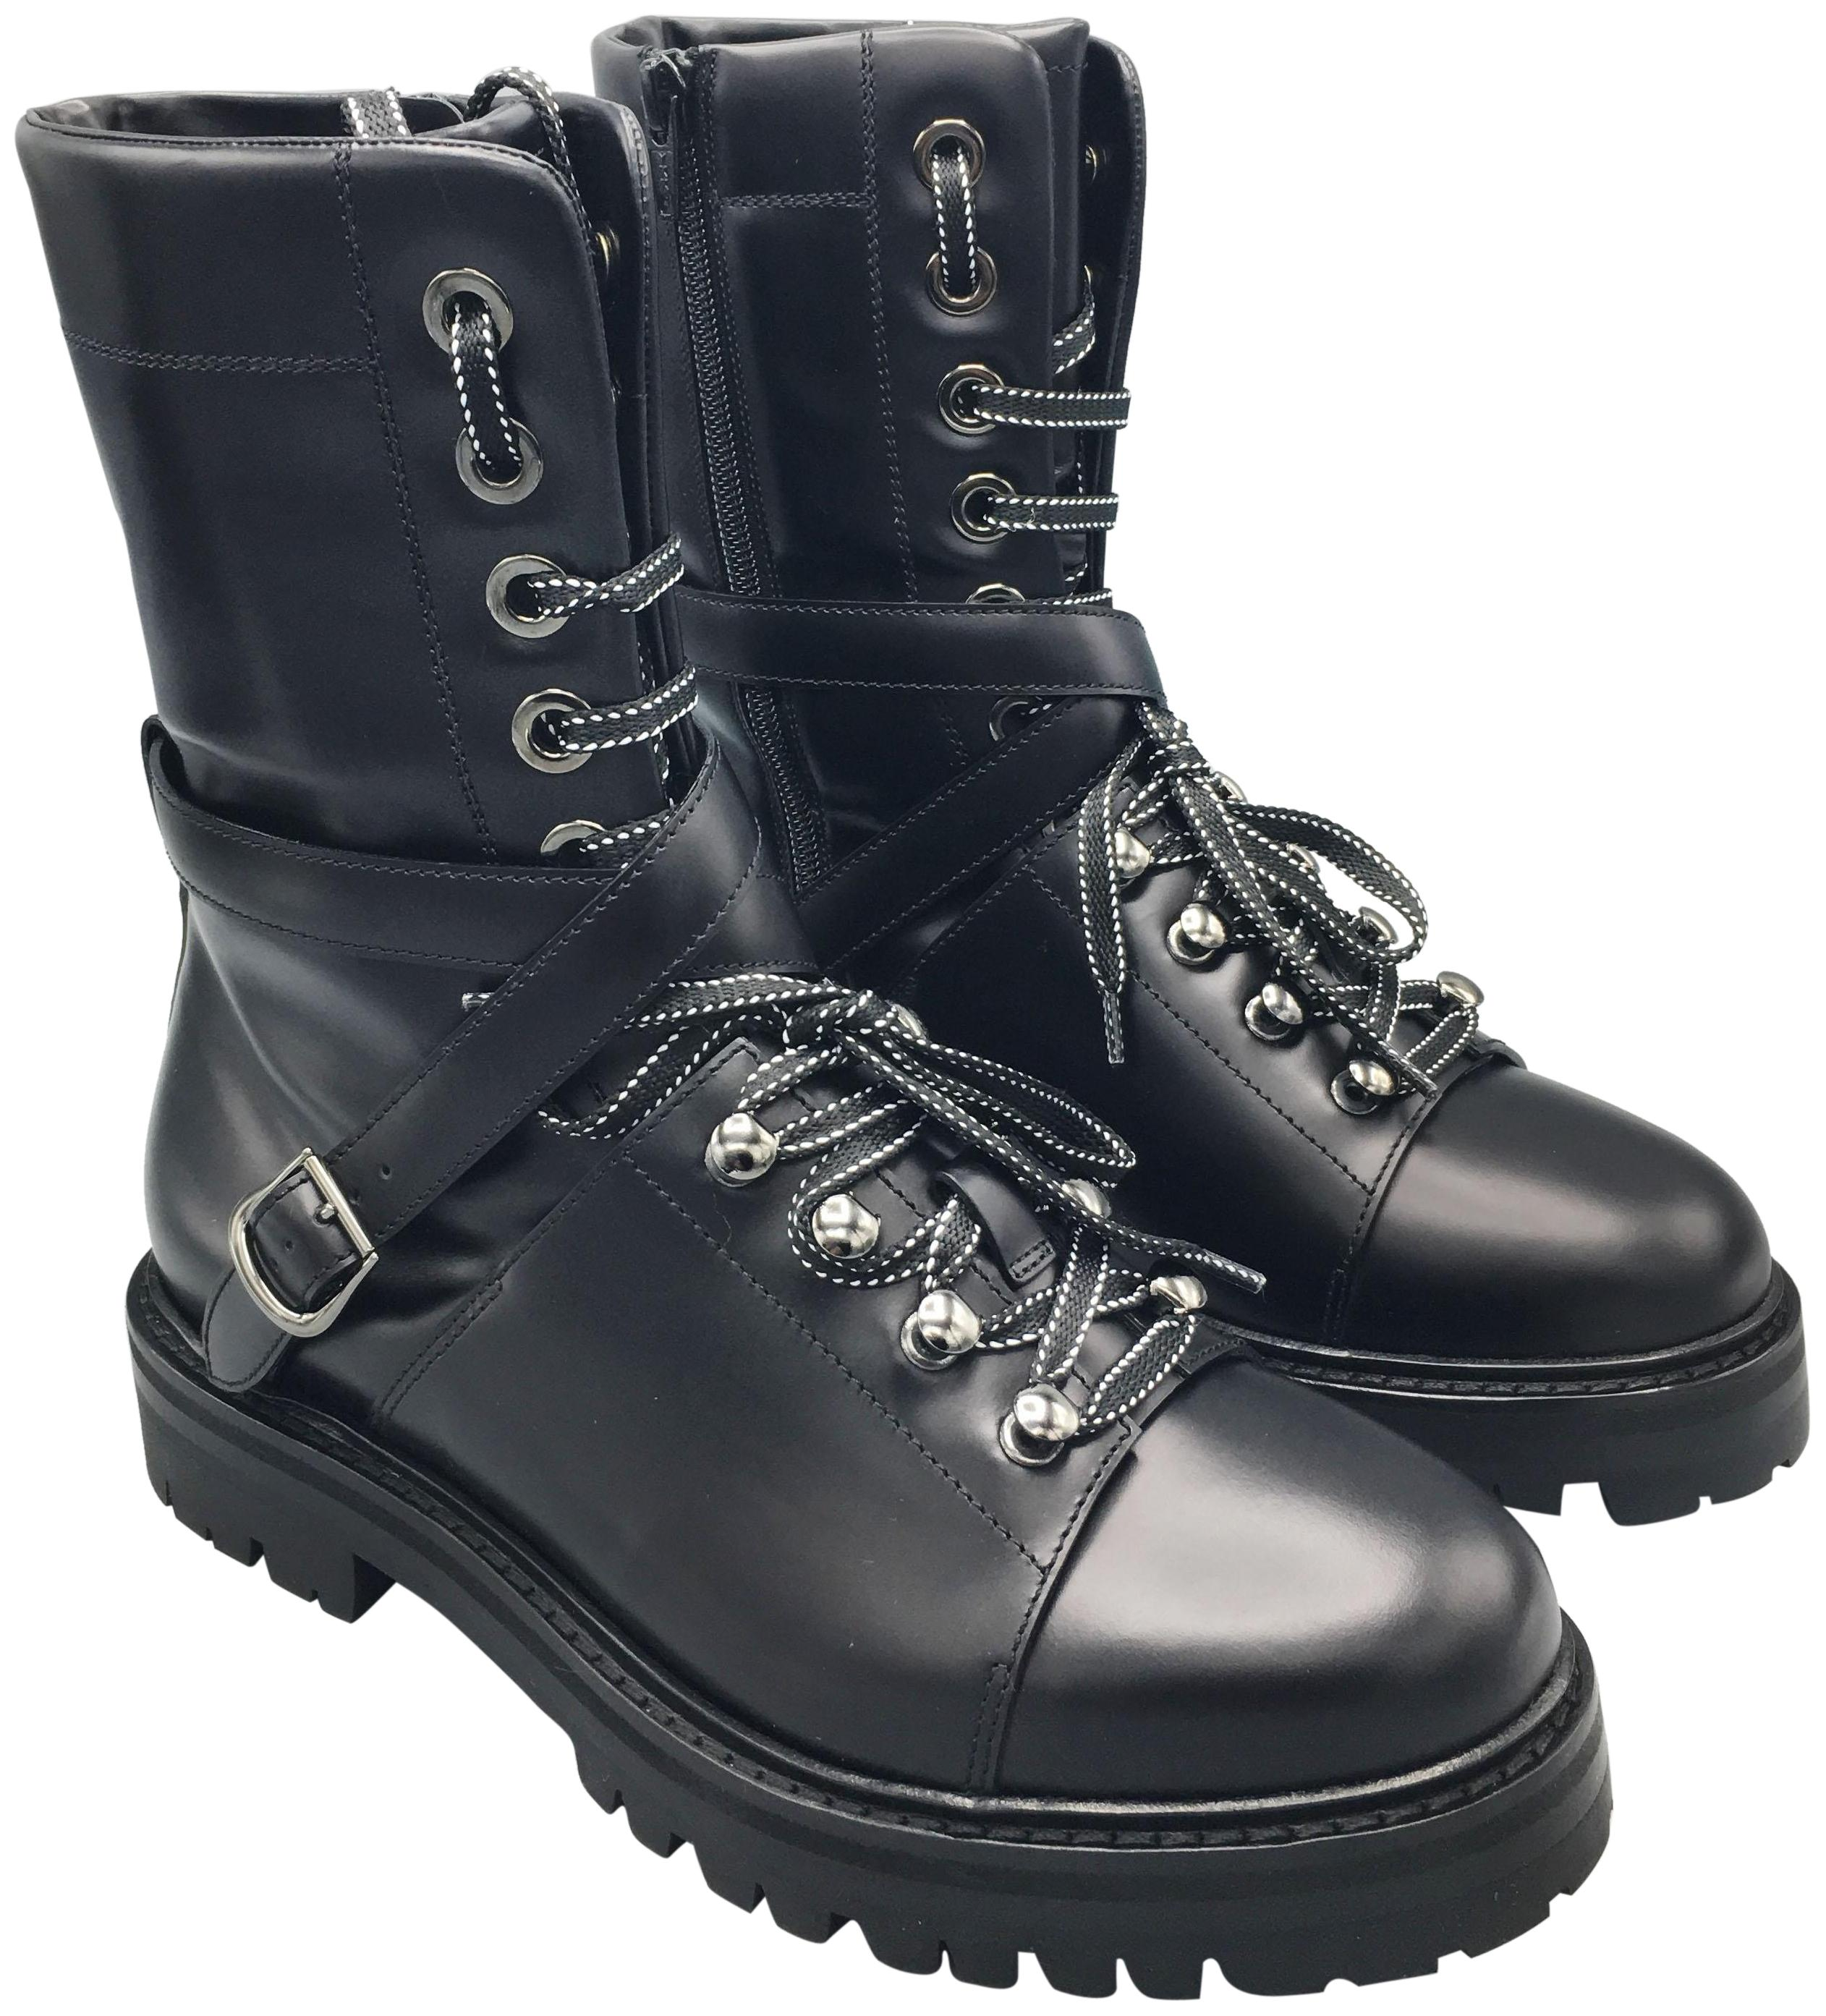 1baf6fbbcf14a Valentino Black Style Size US 8 Regular (M, B) Combat Boots/Booties ...